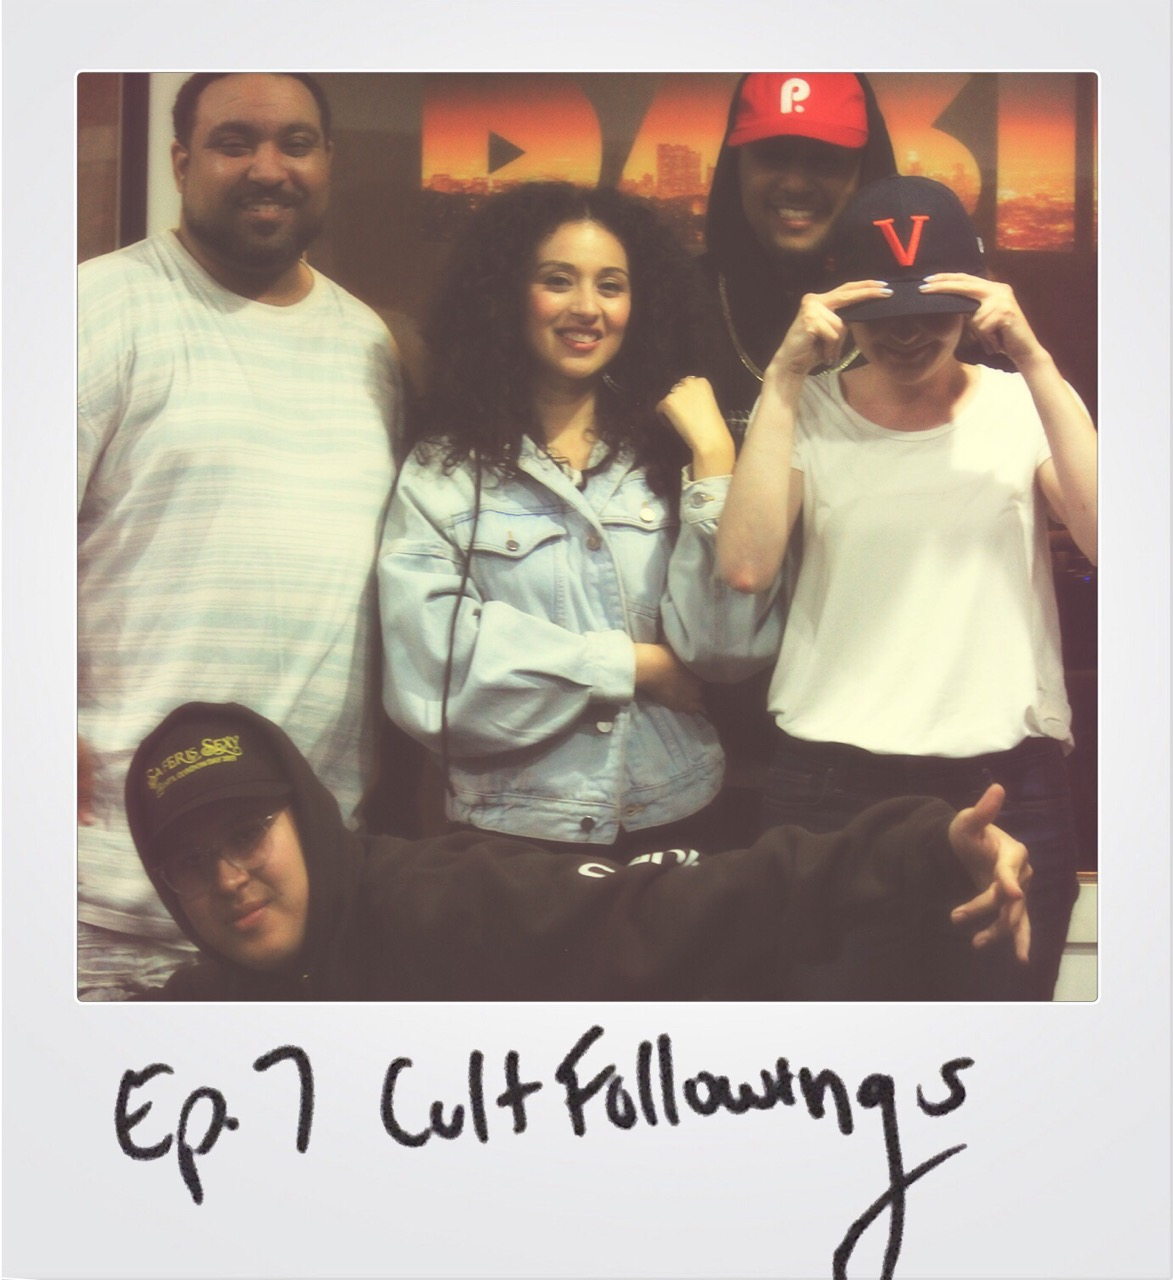 Episode 7 - Cult Followings - We explore the cult followings of Kid Cudi, MF DOOM, Eminem, Tyler The Creator, Lupe Fiasco, Logic, J. Cole and Nicki Minaj and what it means to have such diehard fans.